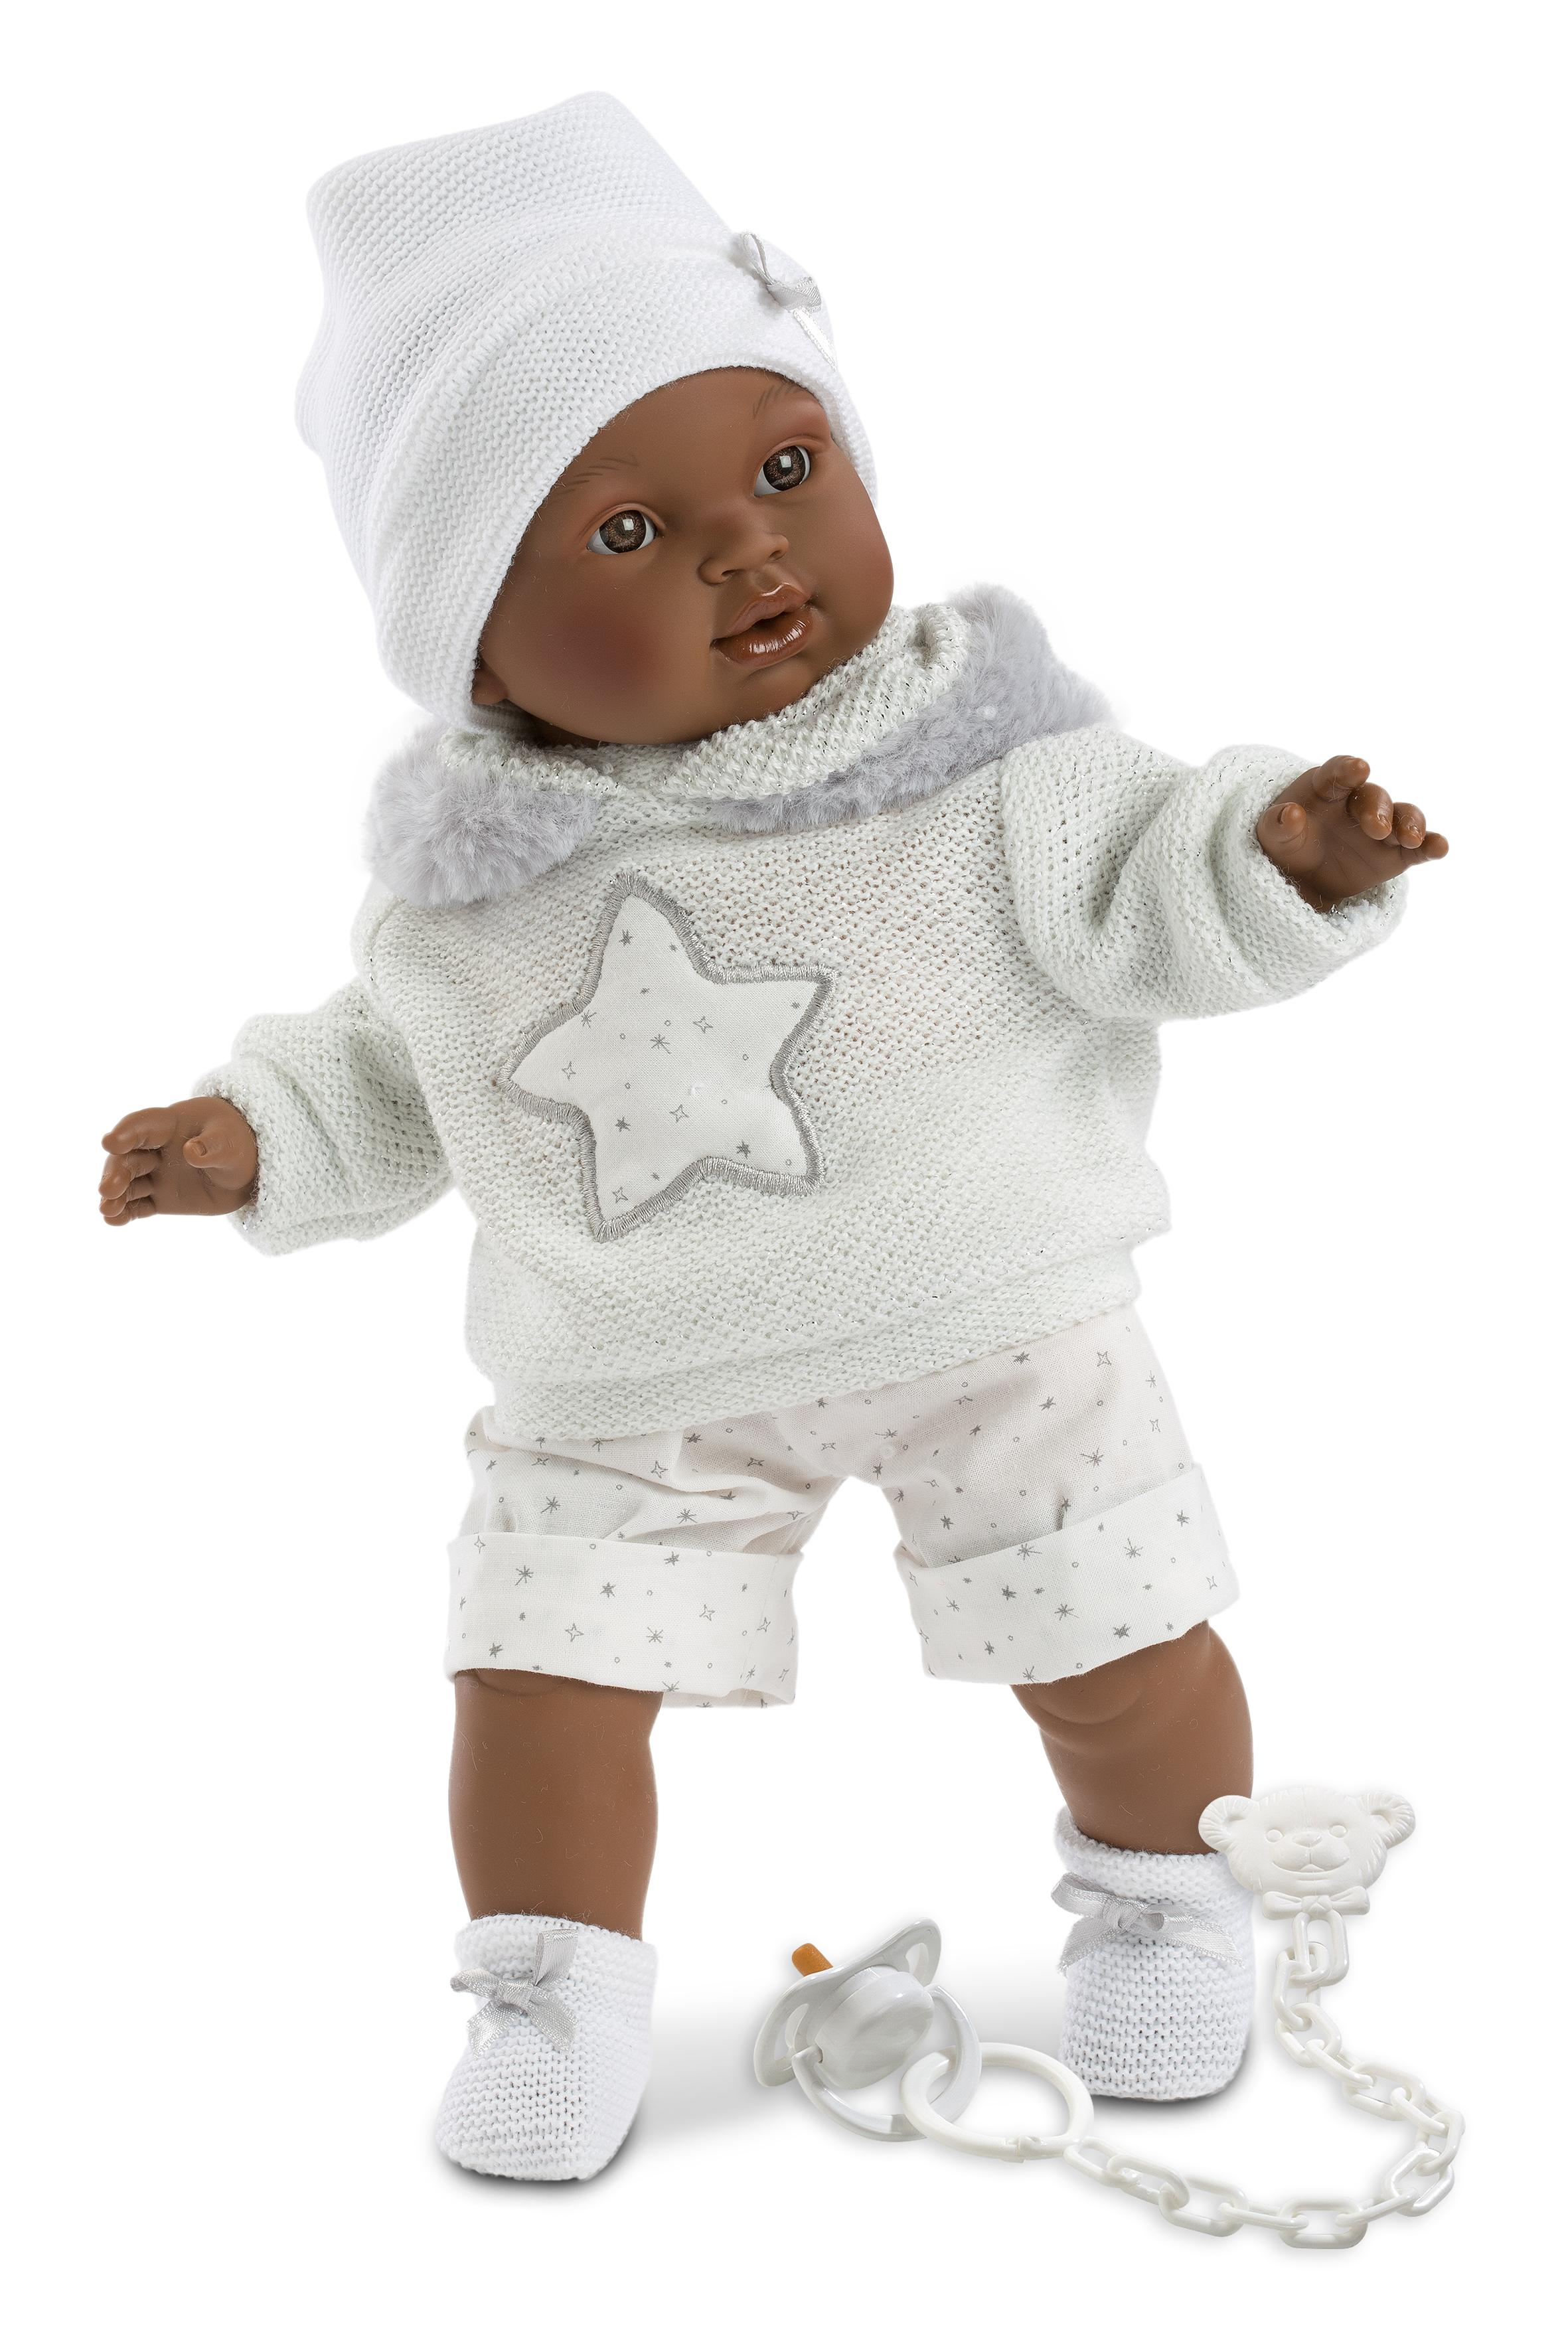 black boy doll in a white outfit